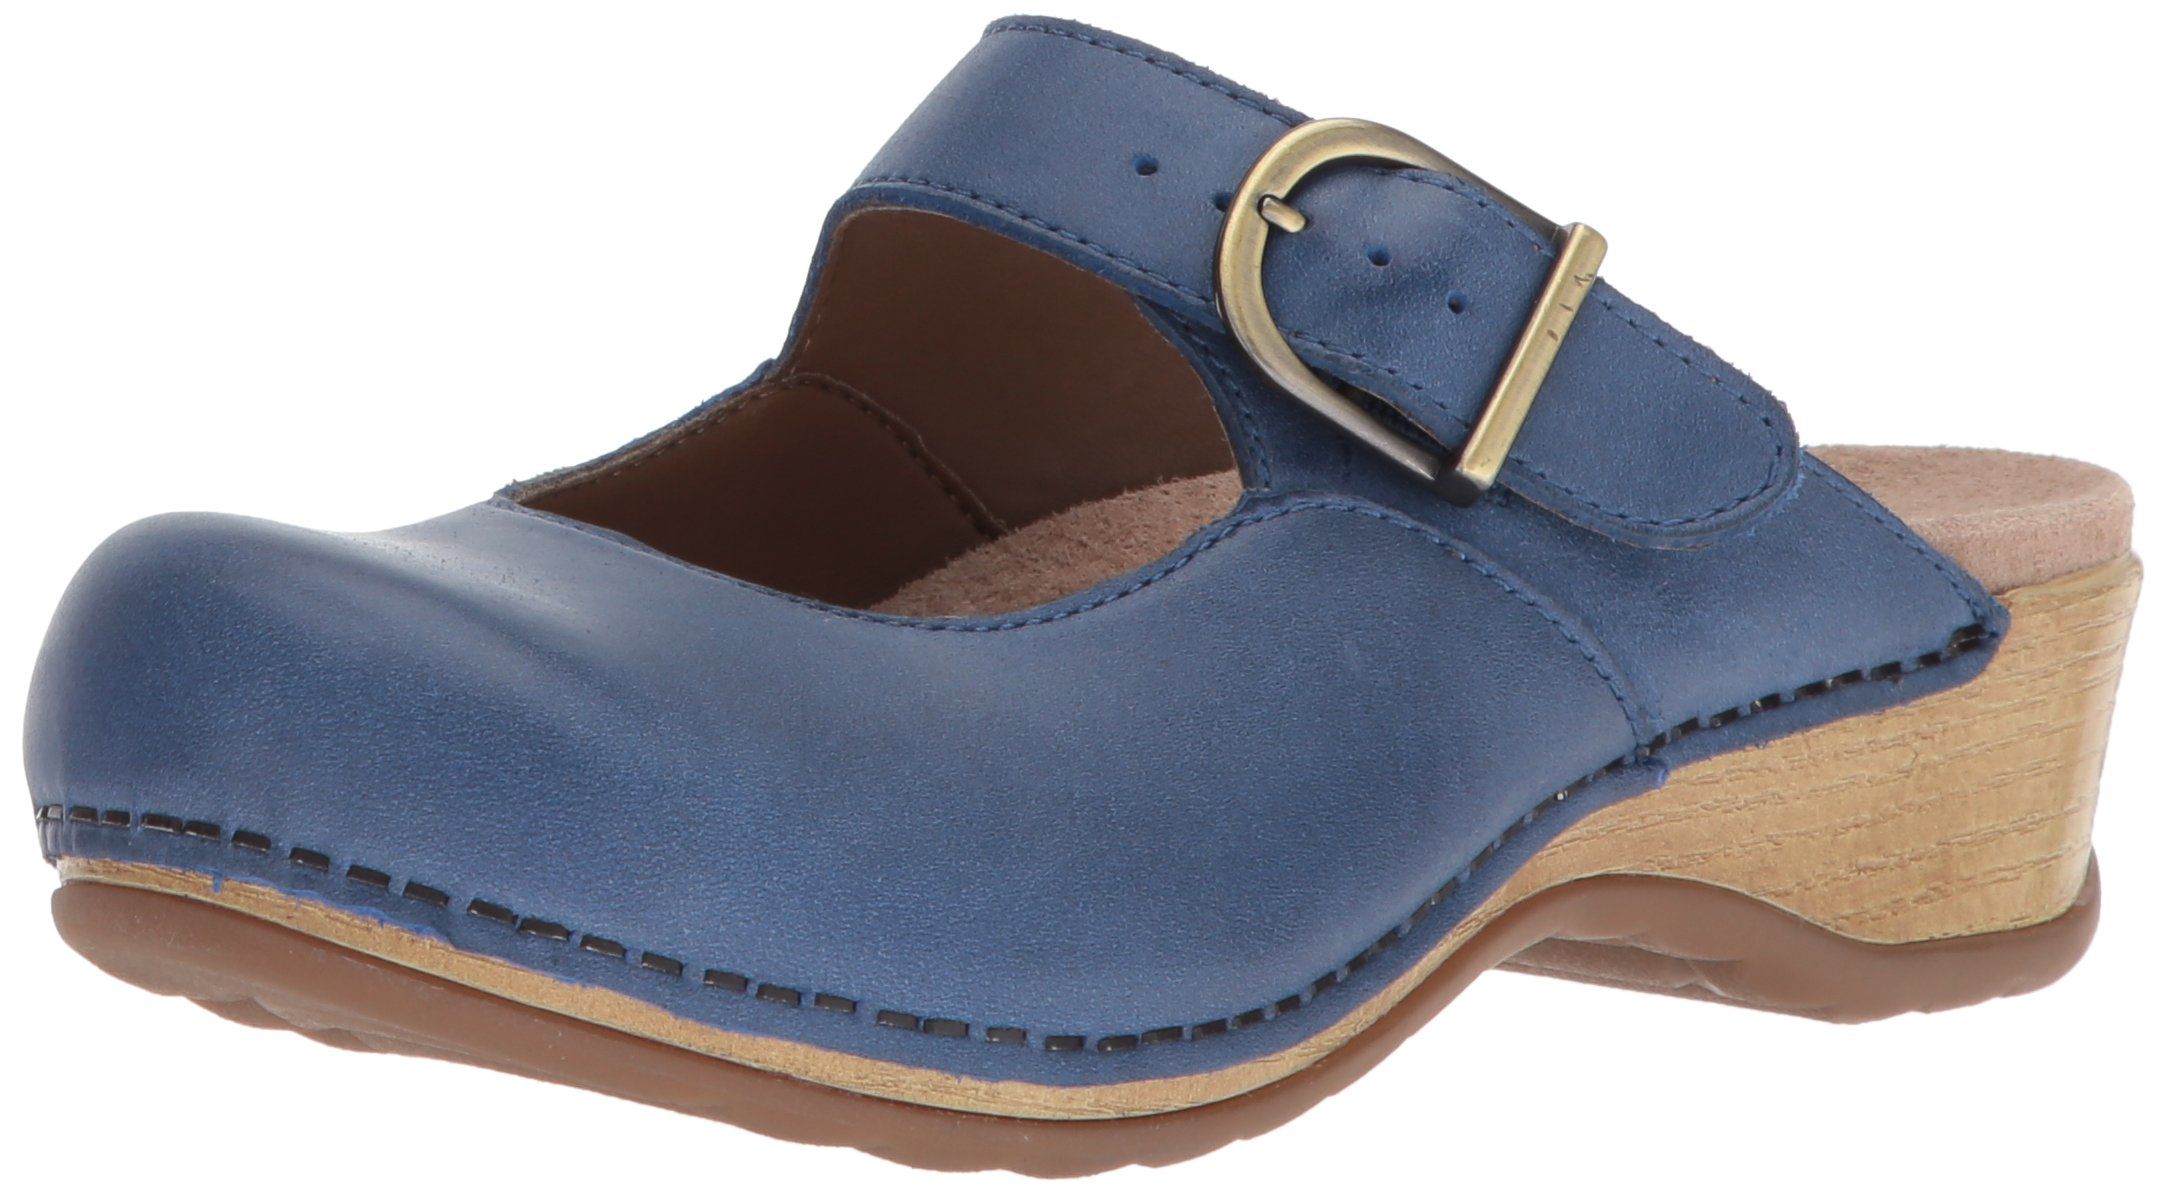 Dansko Women's Martina Mule, Blue Burnished Nappa, 40 M EU (9.5-10 US)